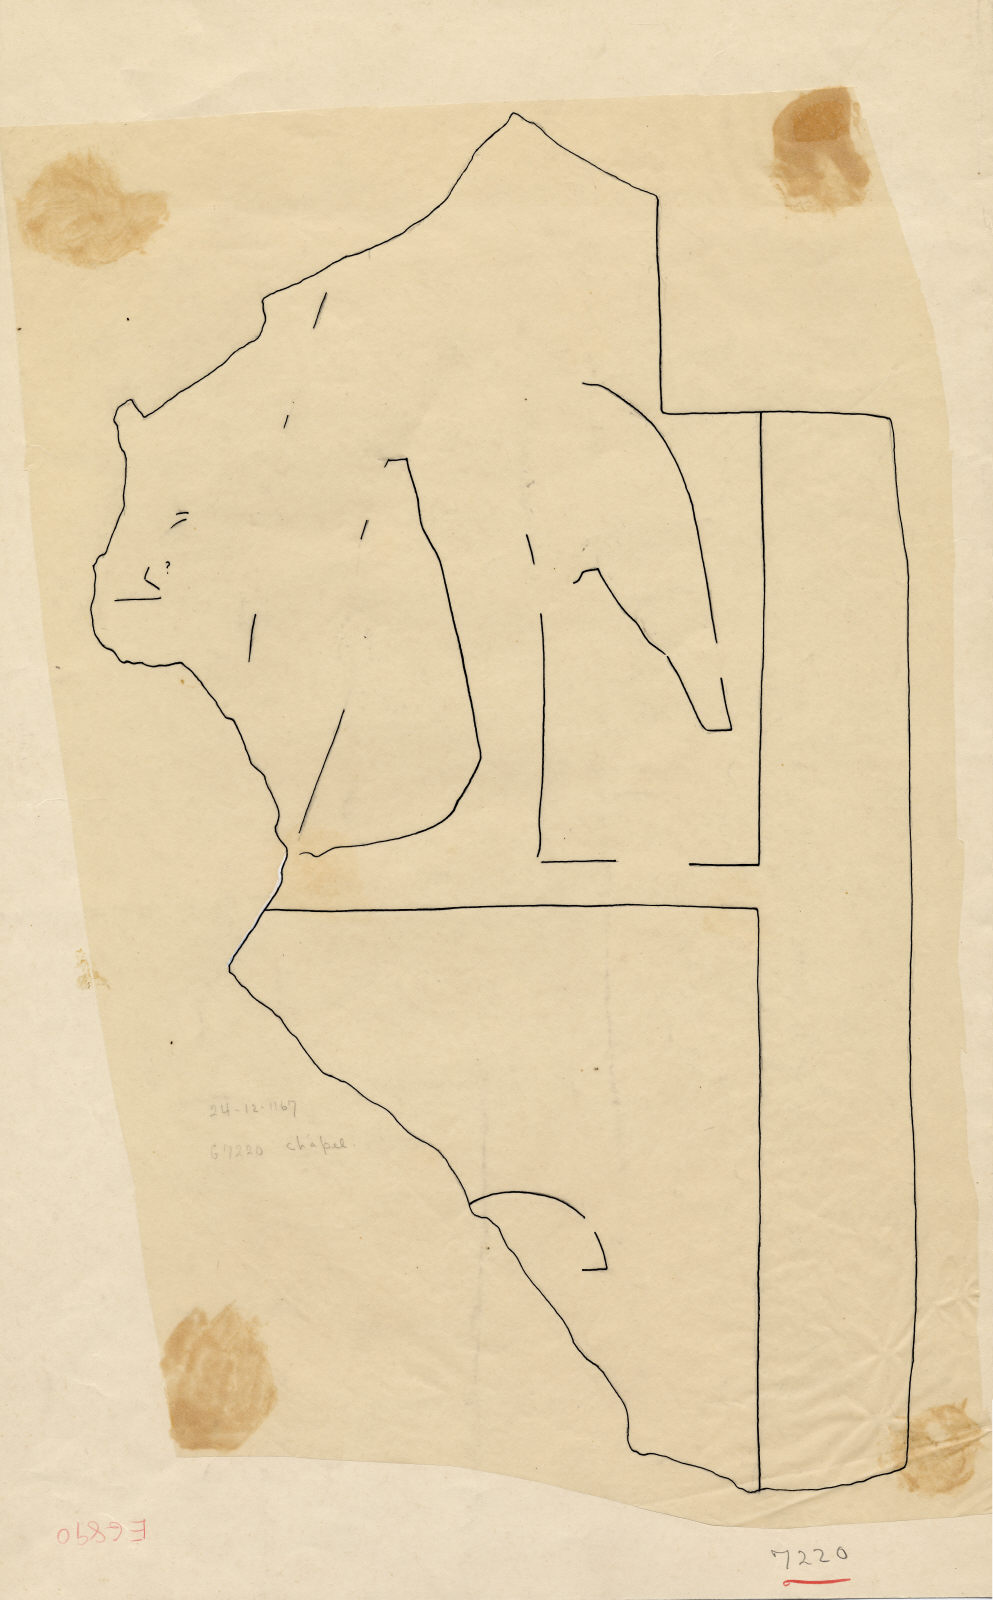 Drawings: Street G 7200, G 7220: fragment of relief